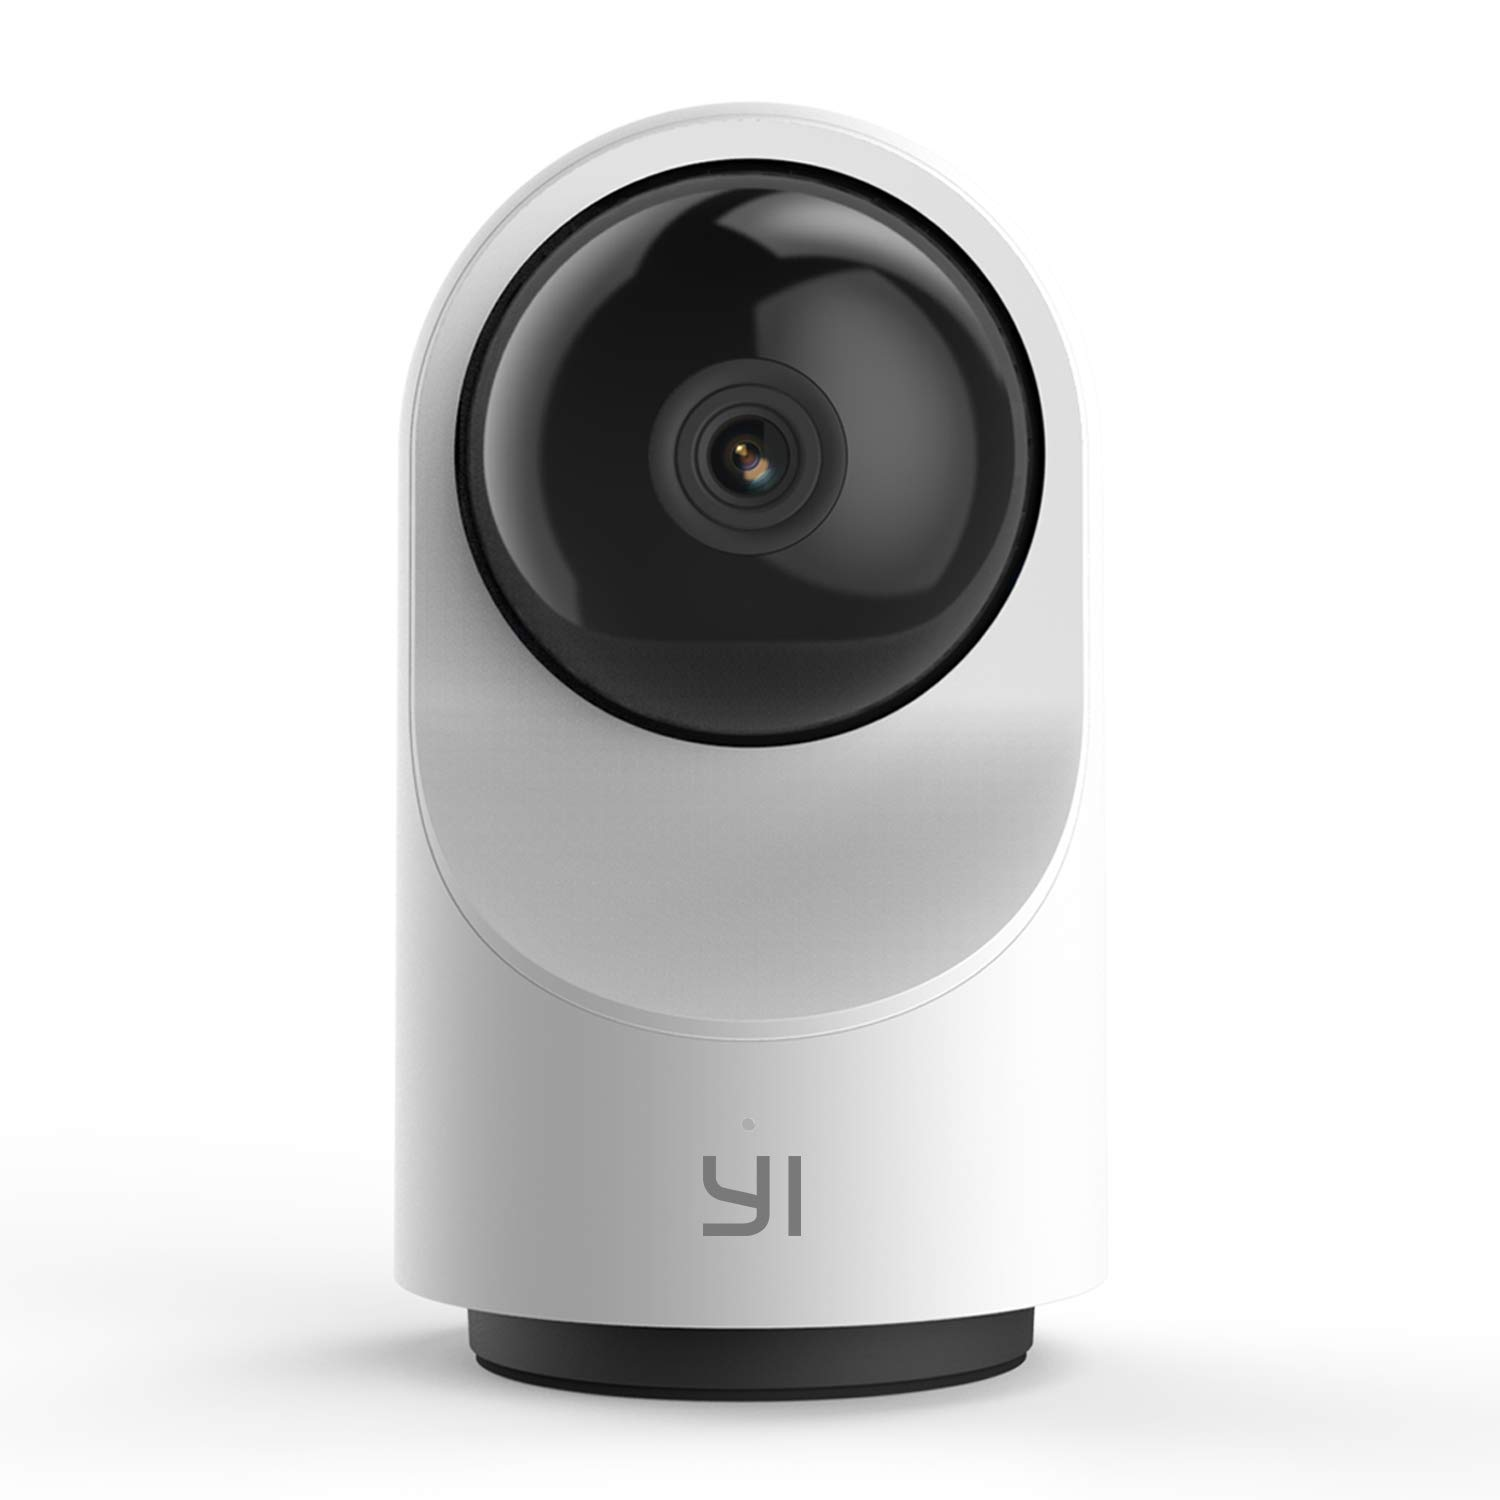 YI Smart Dome Security Camera X, AI-Powered 1080p WiFi IP Home Surveillance System with 24/7 Emergency Response, Human Detection, Sound Analytics, Image Retrieval, Time Lapse - Cloud Service Available by YI